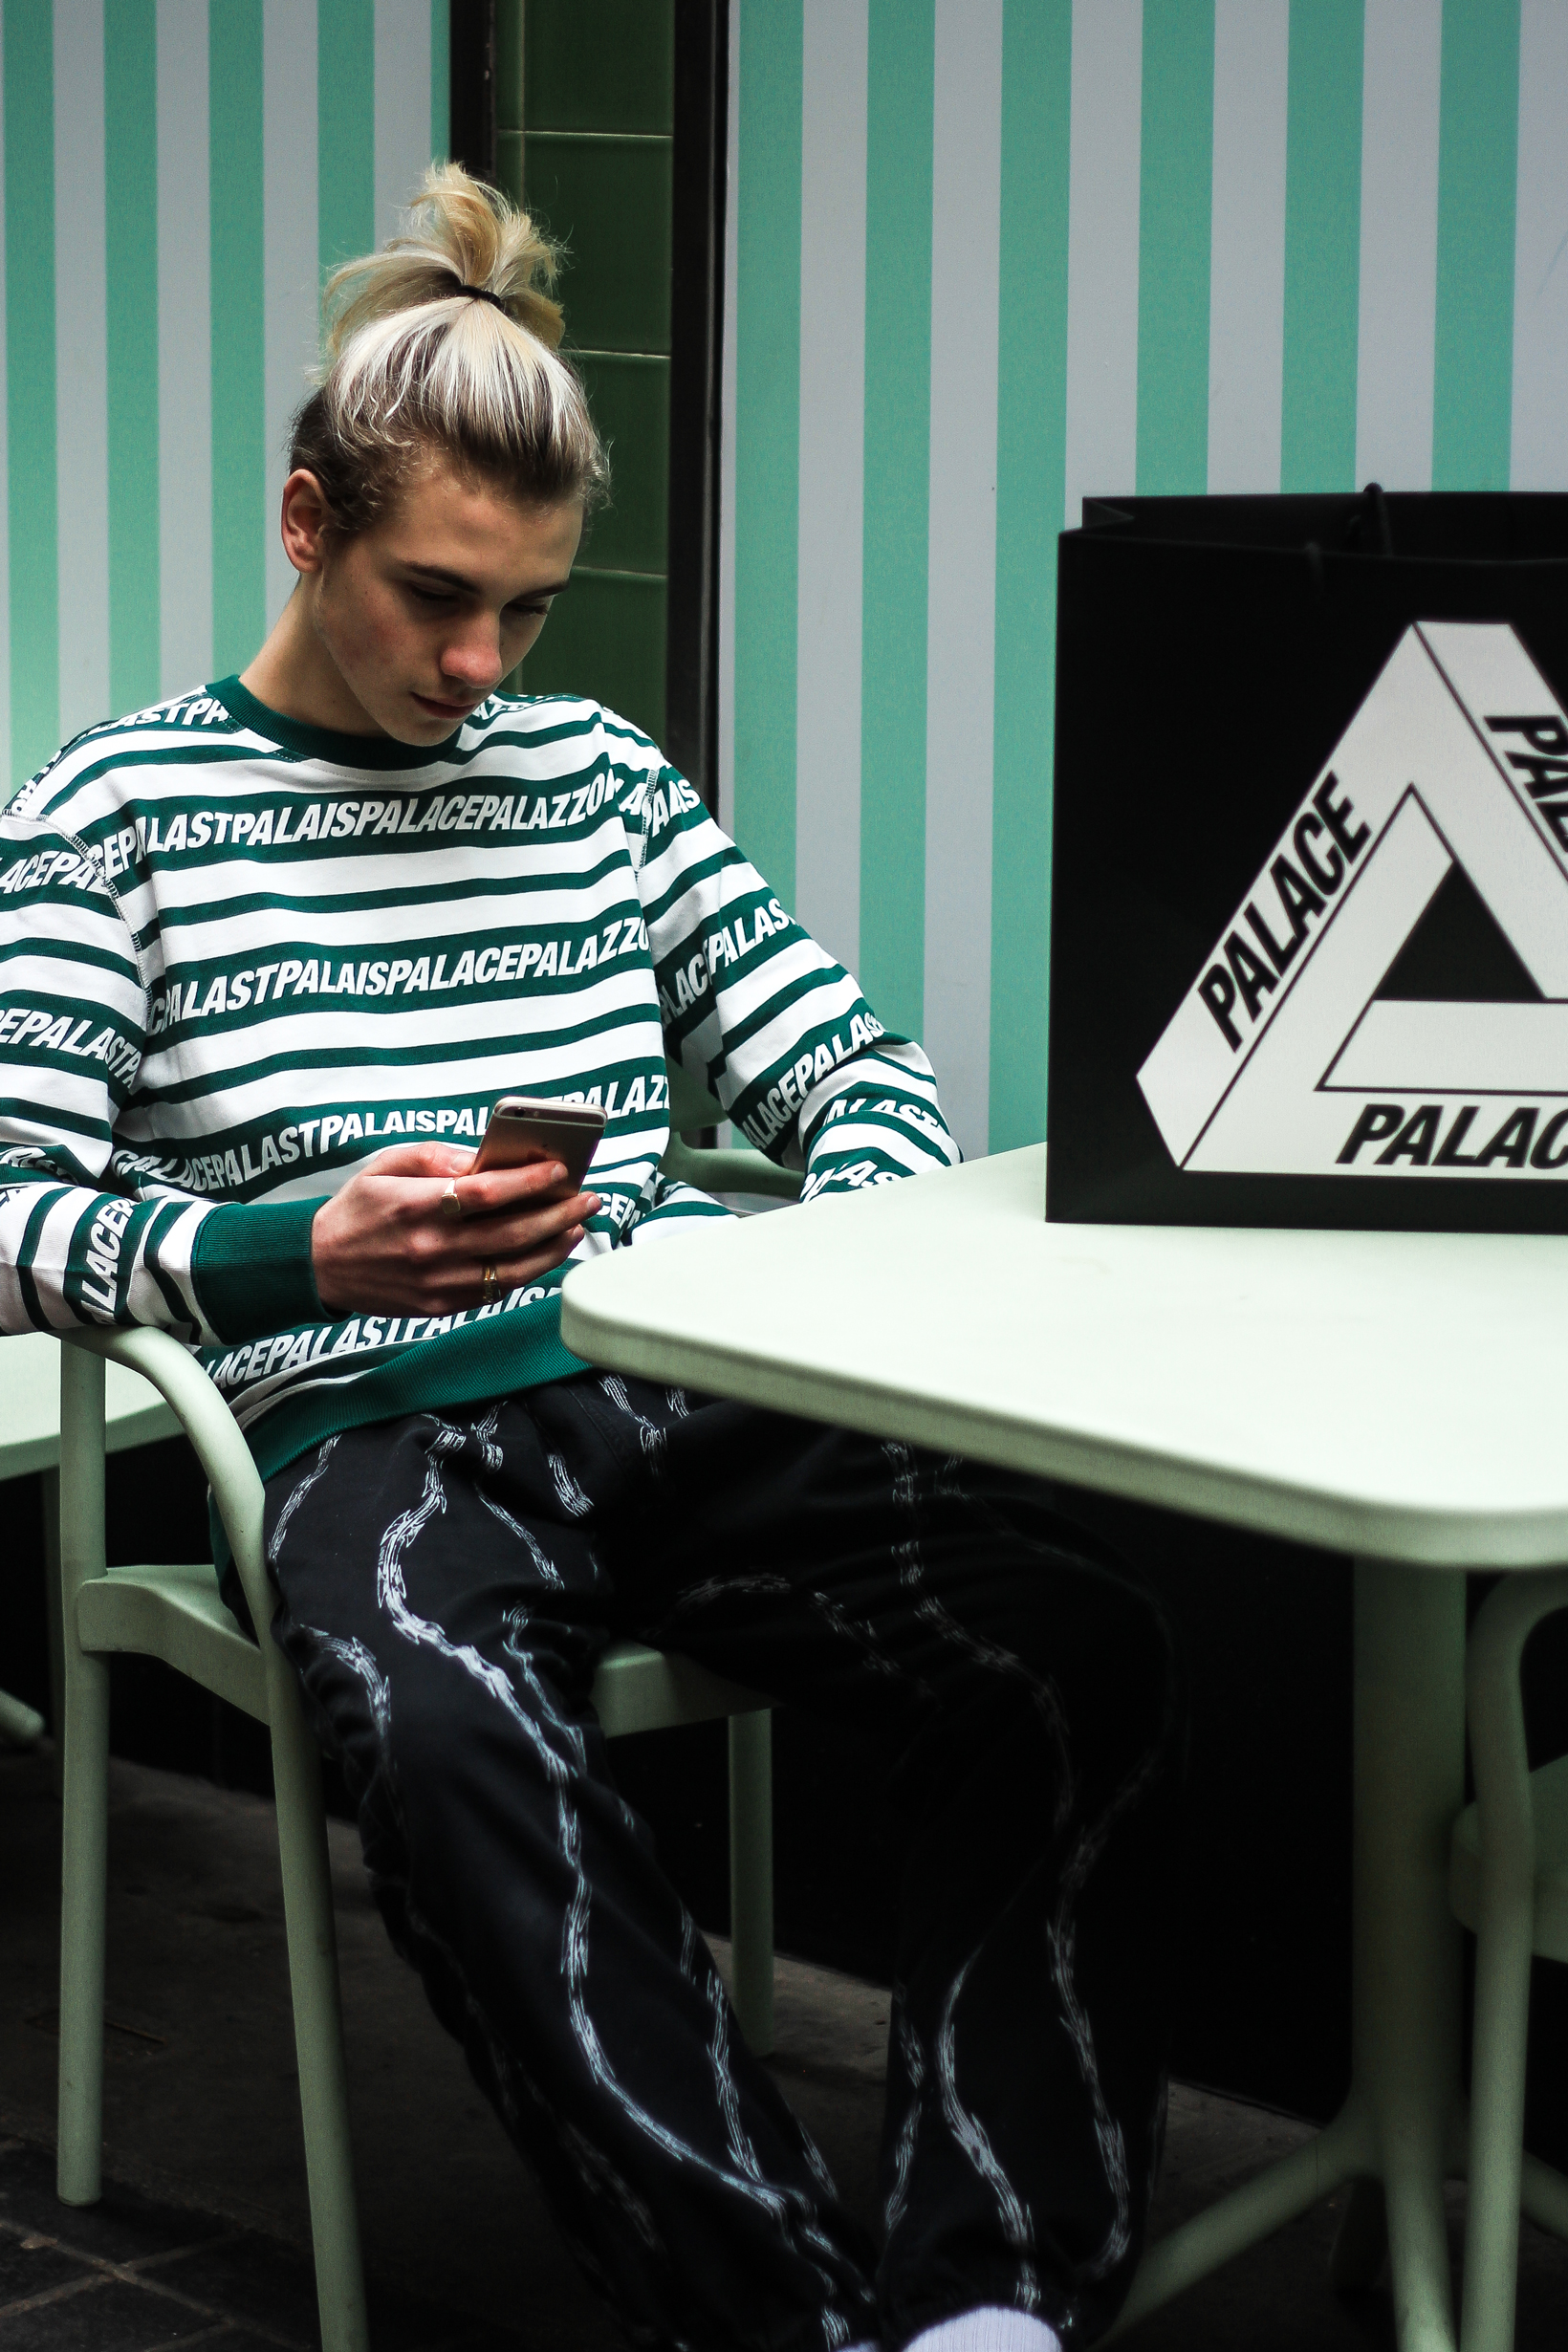 Palace Spring Summer 2017 Delivery Streetstyle Photos Calabasas Supreme The North Face - 3758527